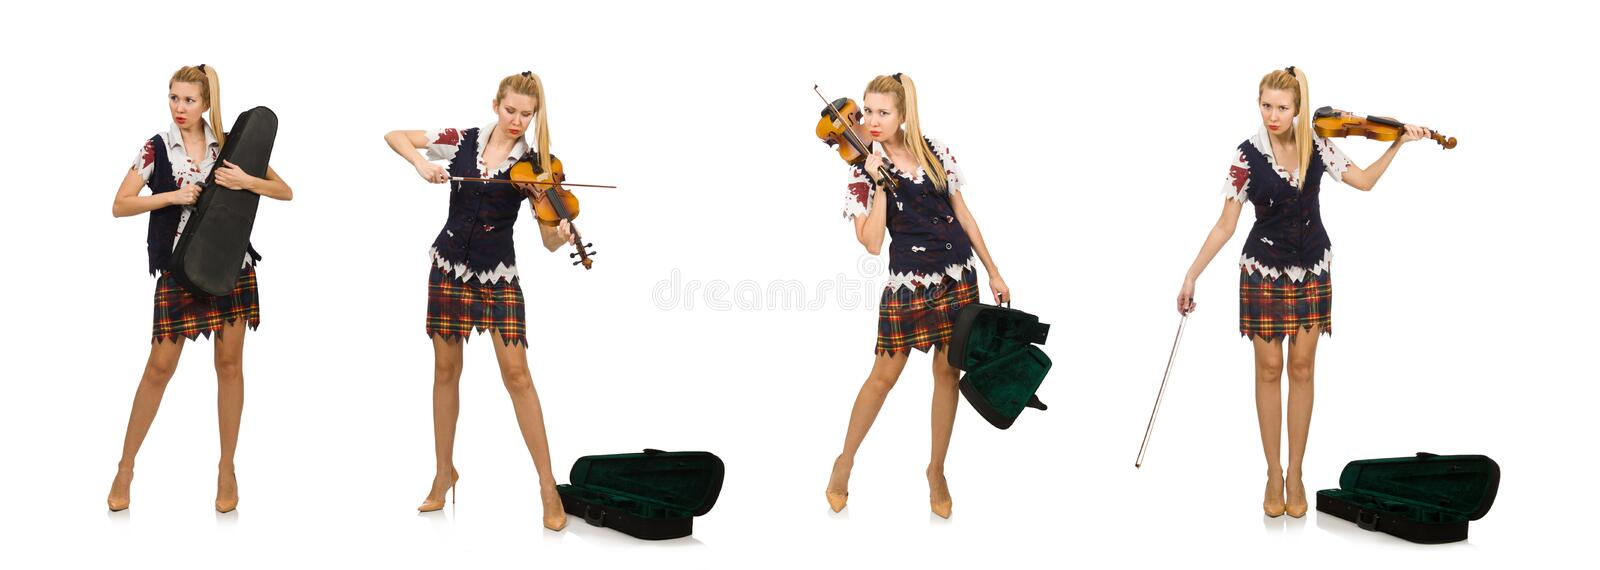 Woman violin player isolated on white royalty free stock photo